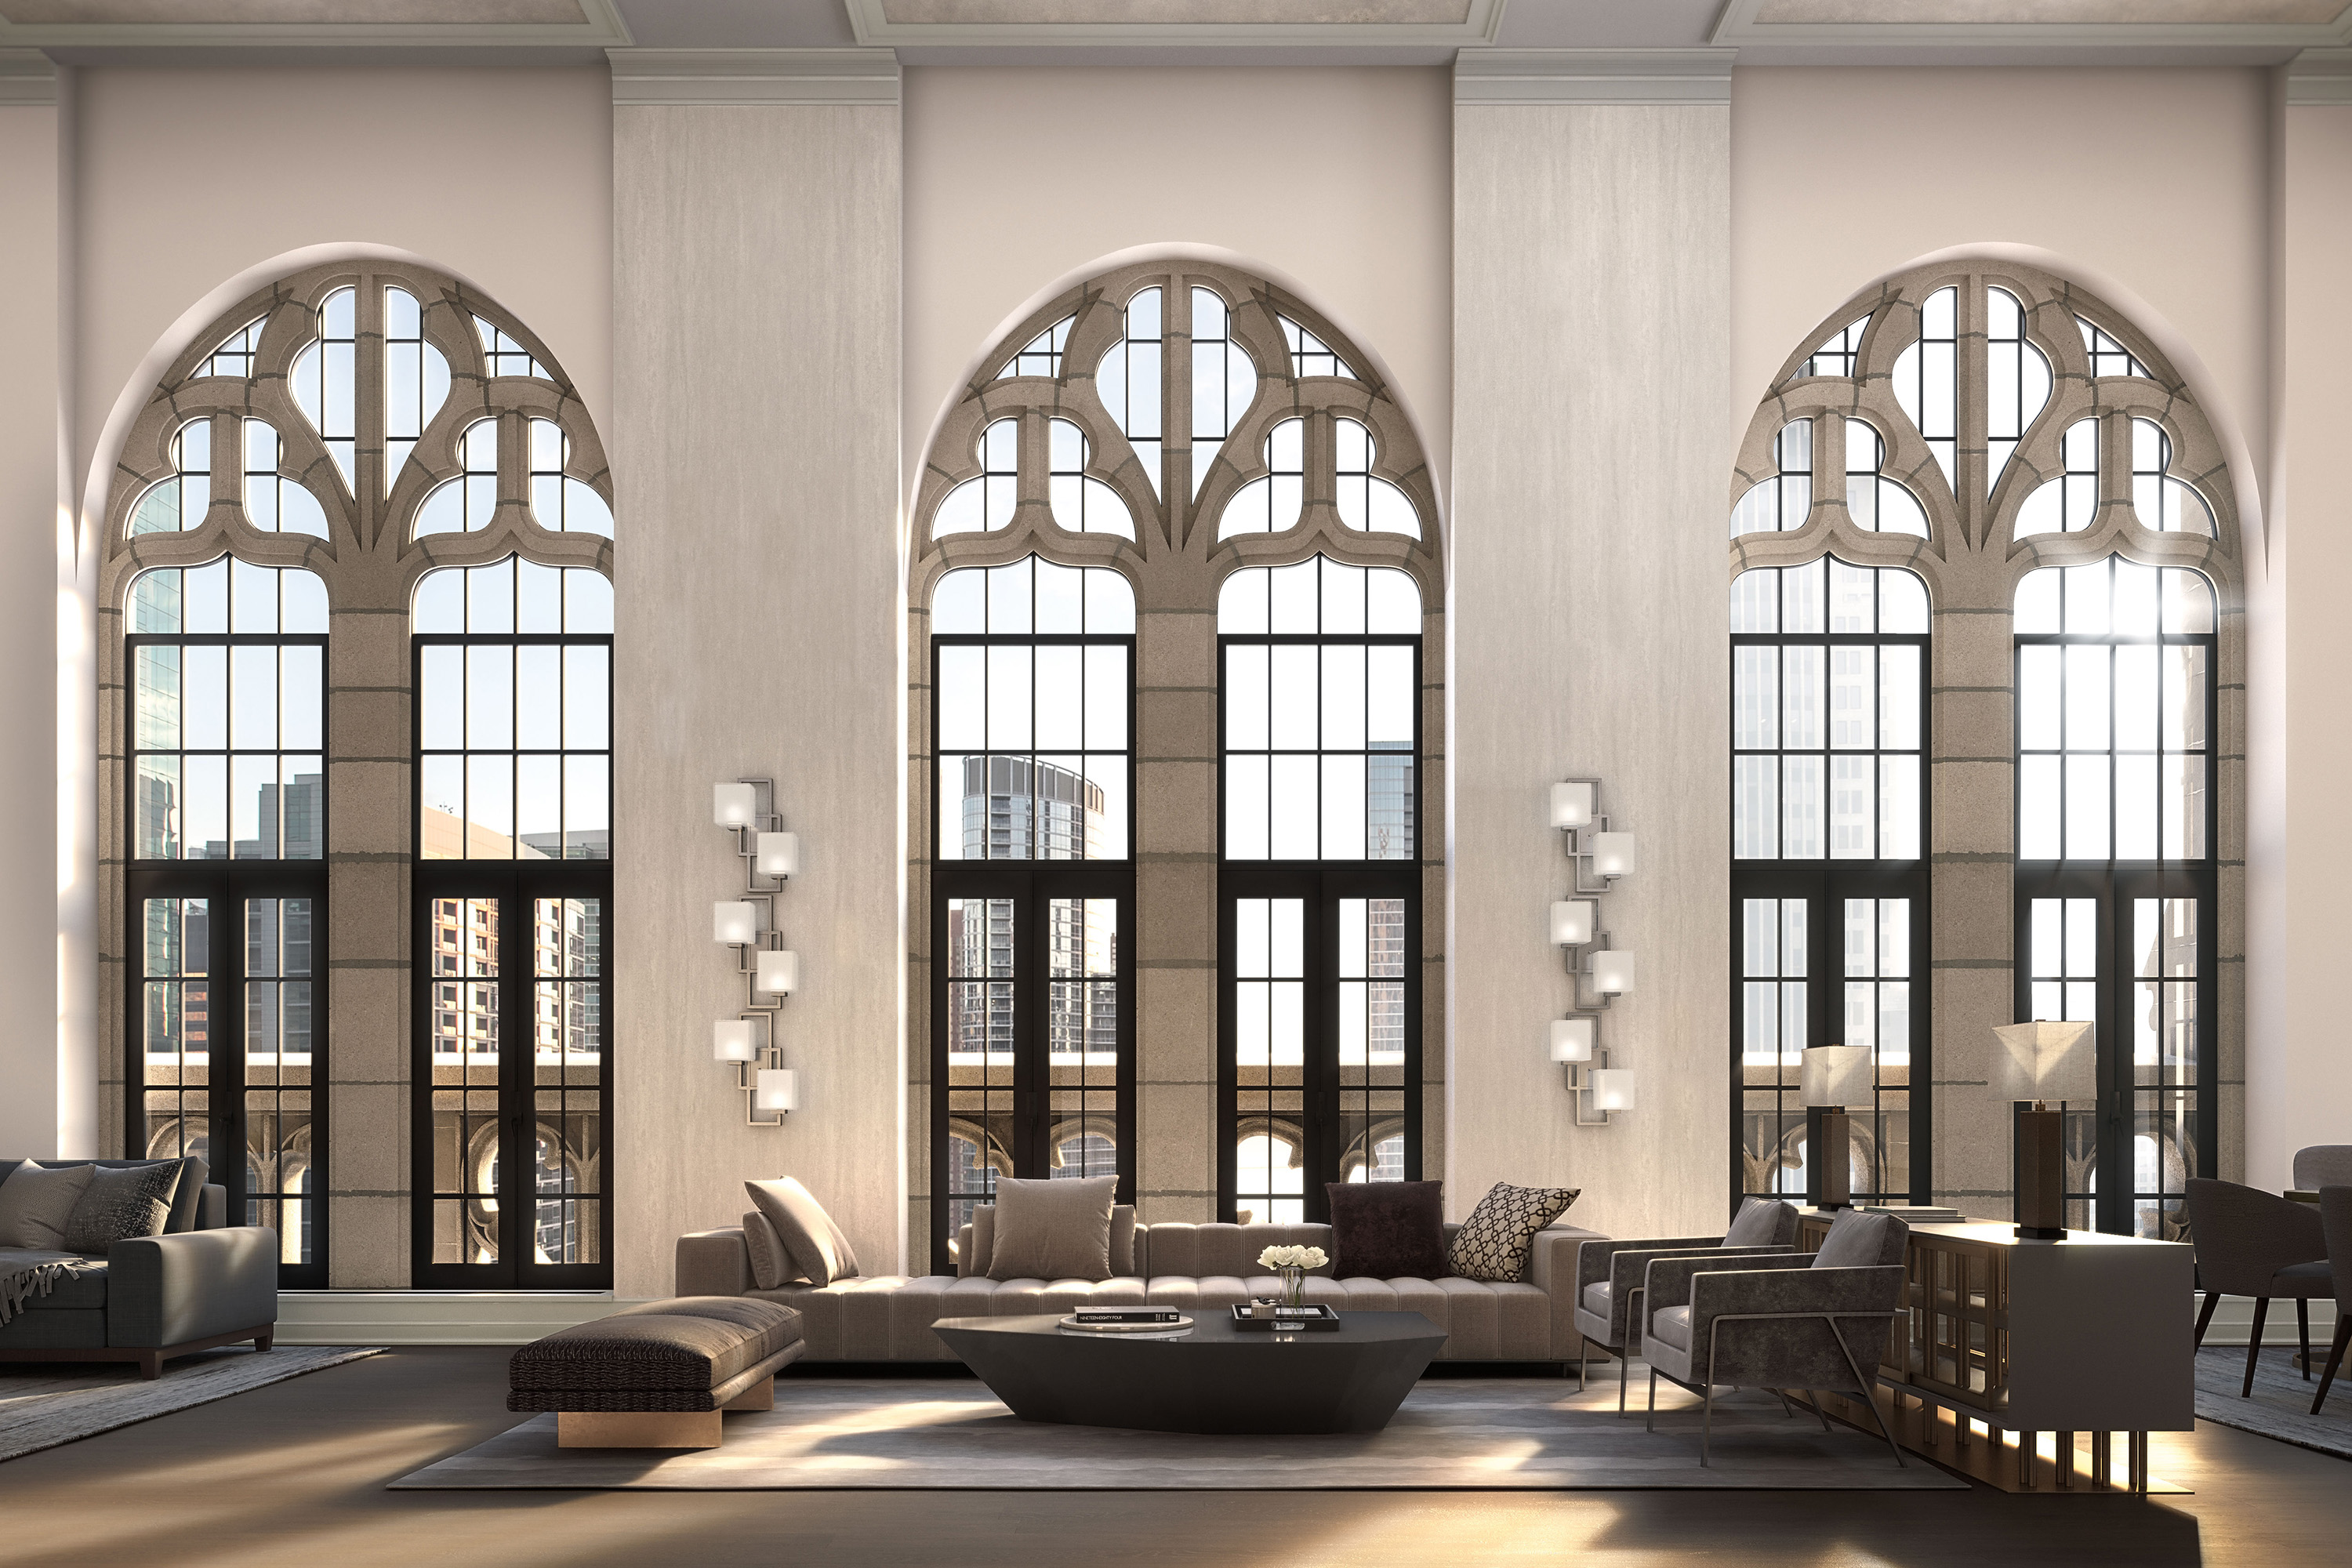 A rendering shows three enormous arched, gothic windows with paned glass and candle scones between each window. Luxurious dark couches fill the living room seating area.